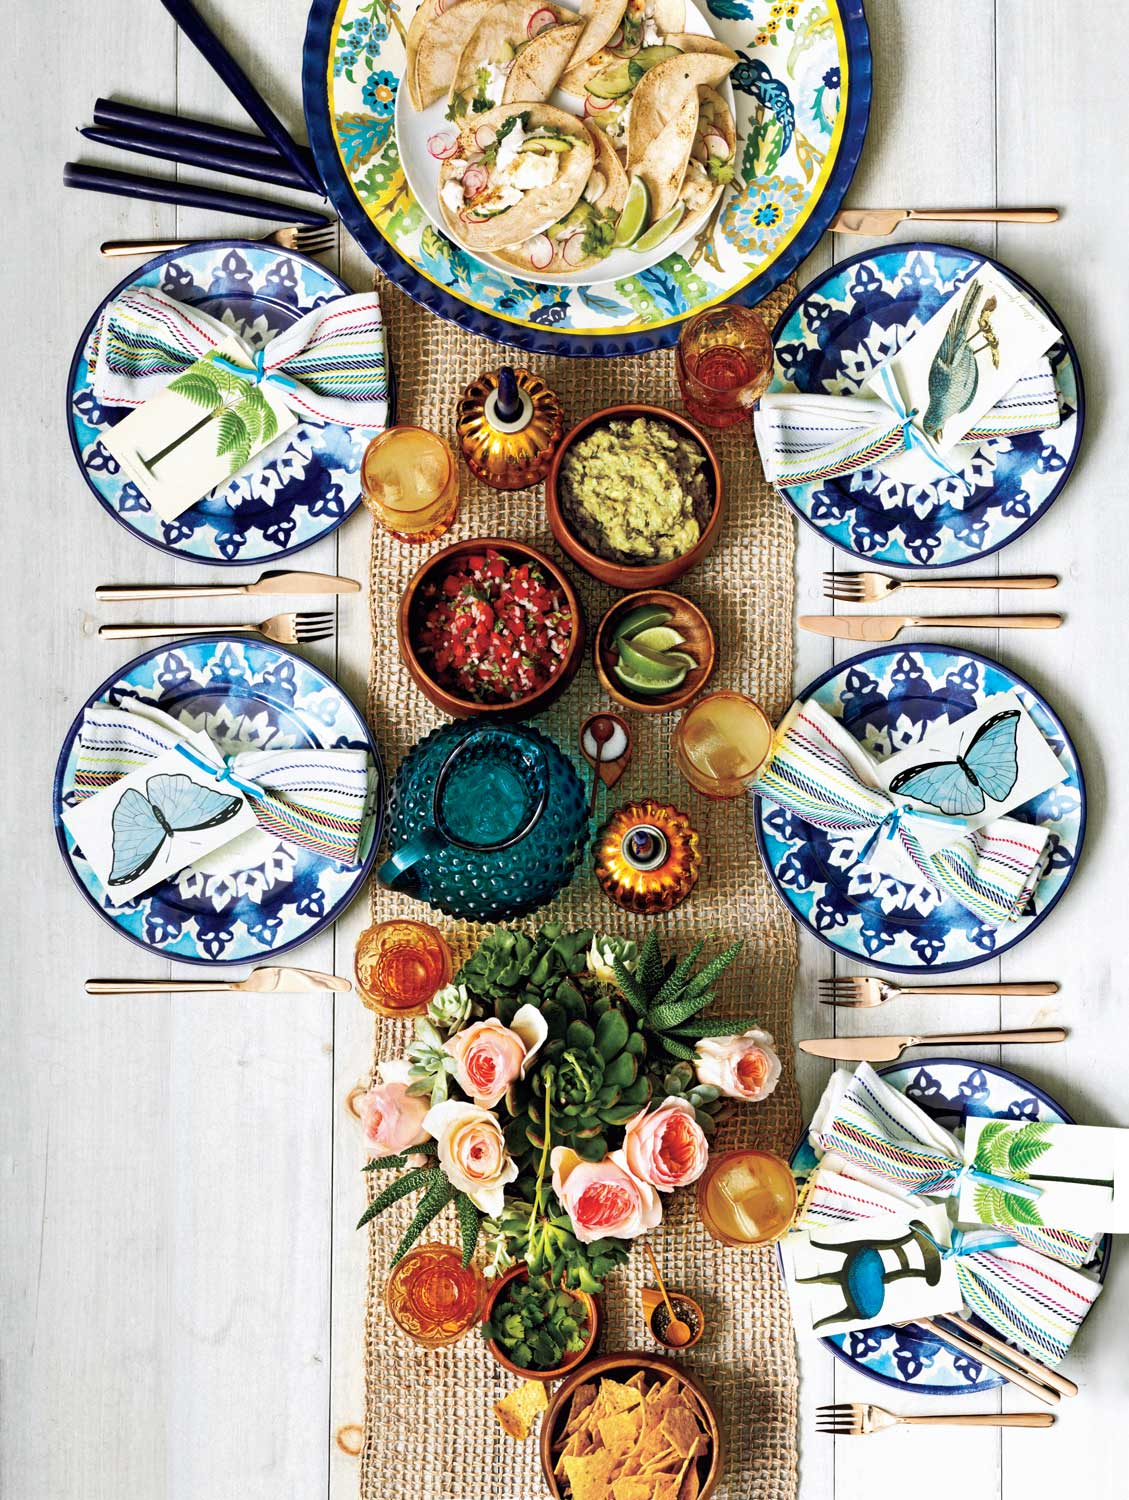 Food and products for outdoor dinner party - Landscape